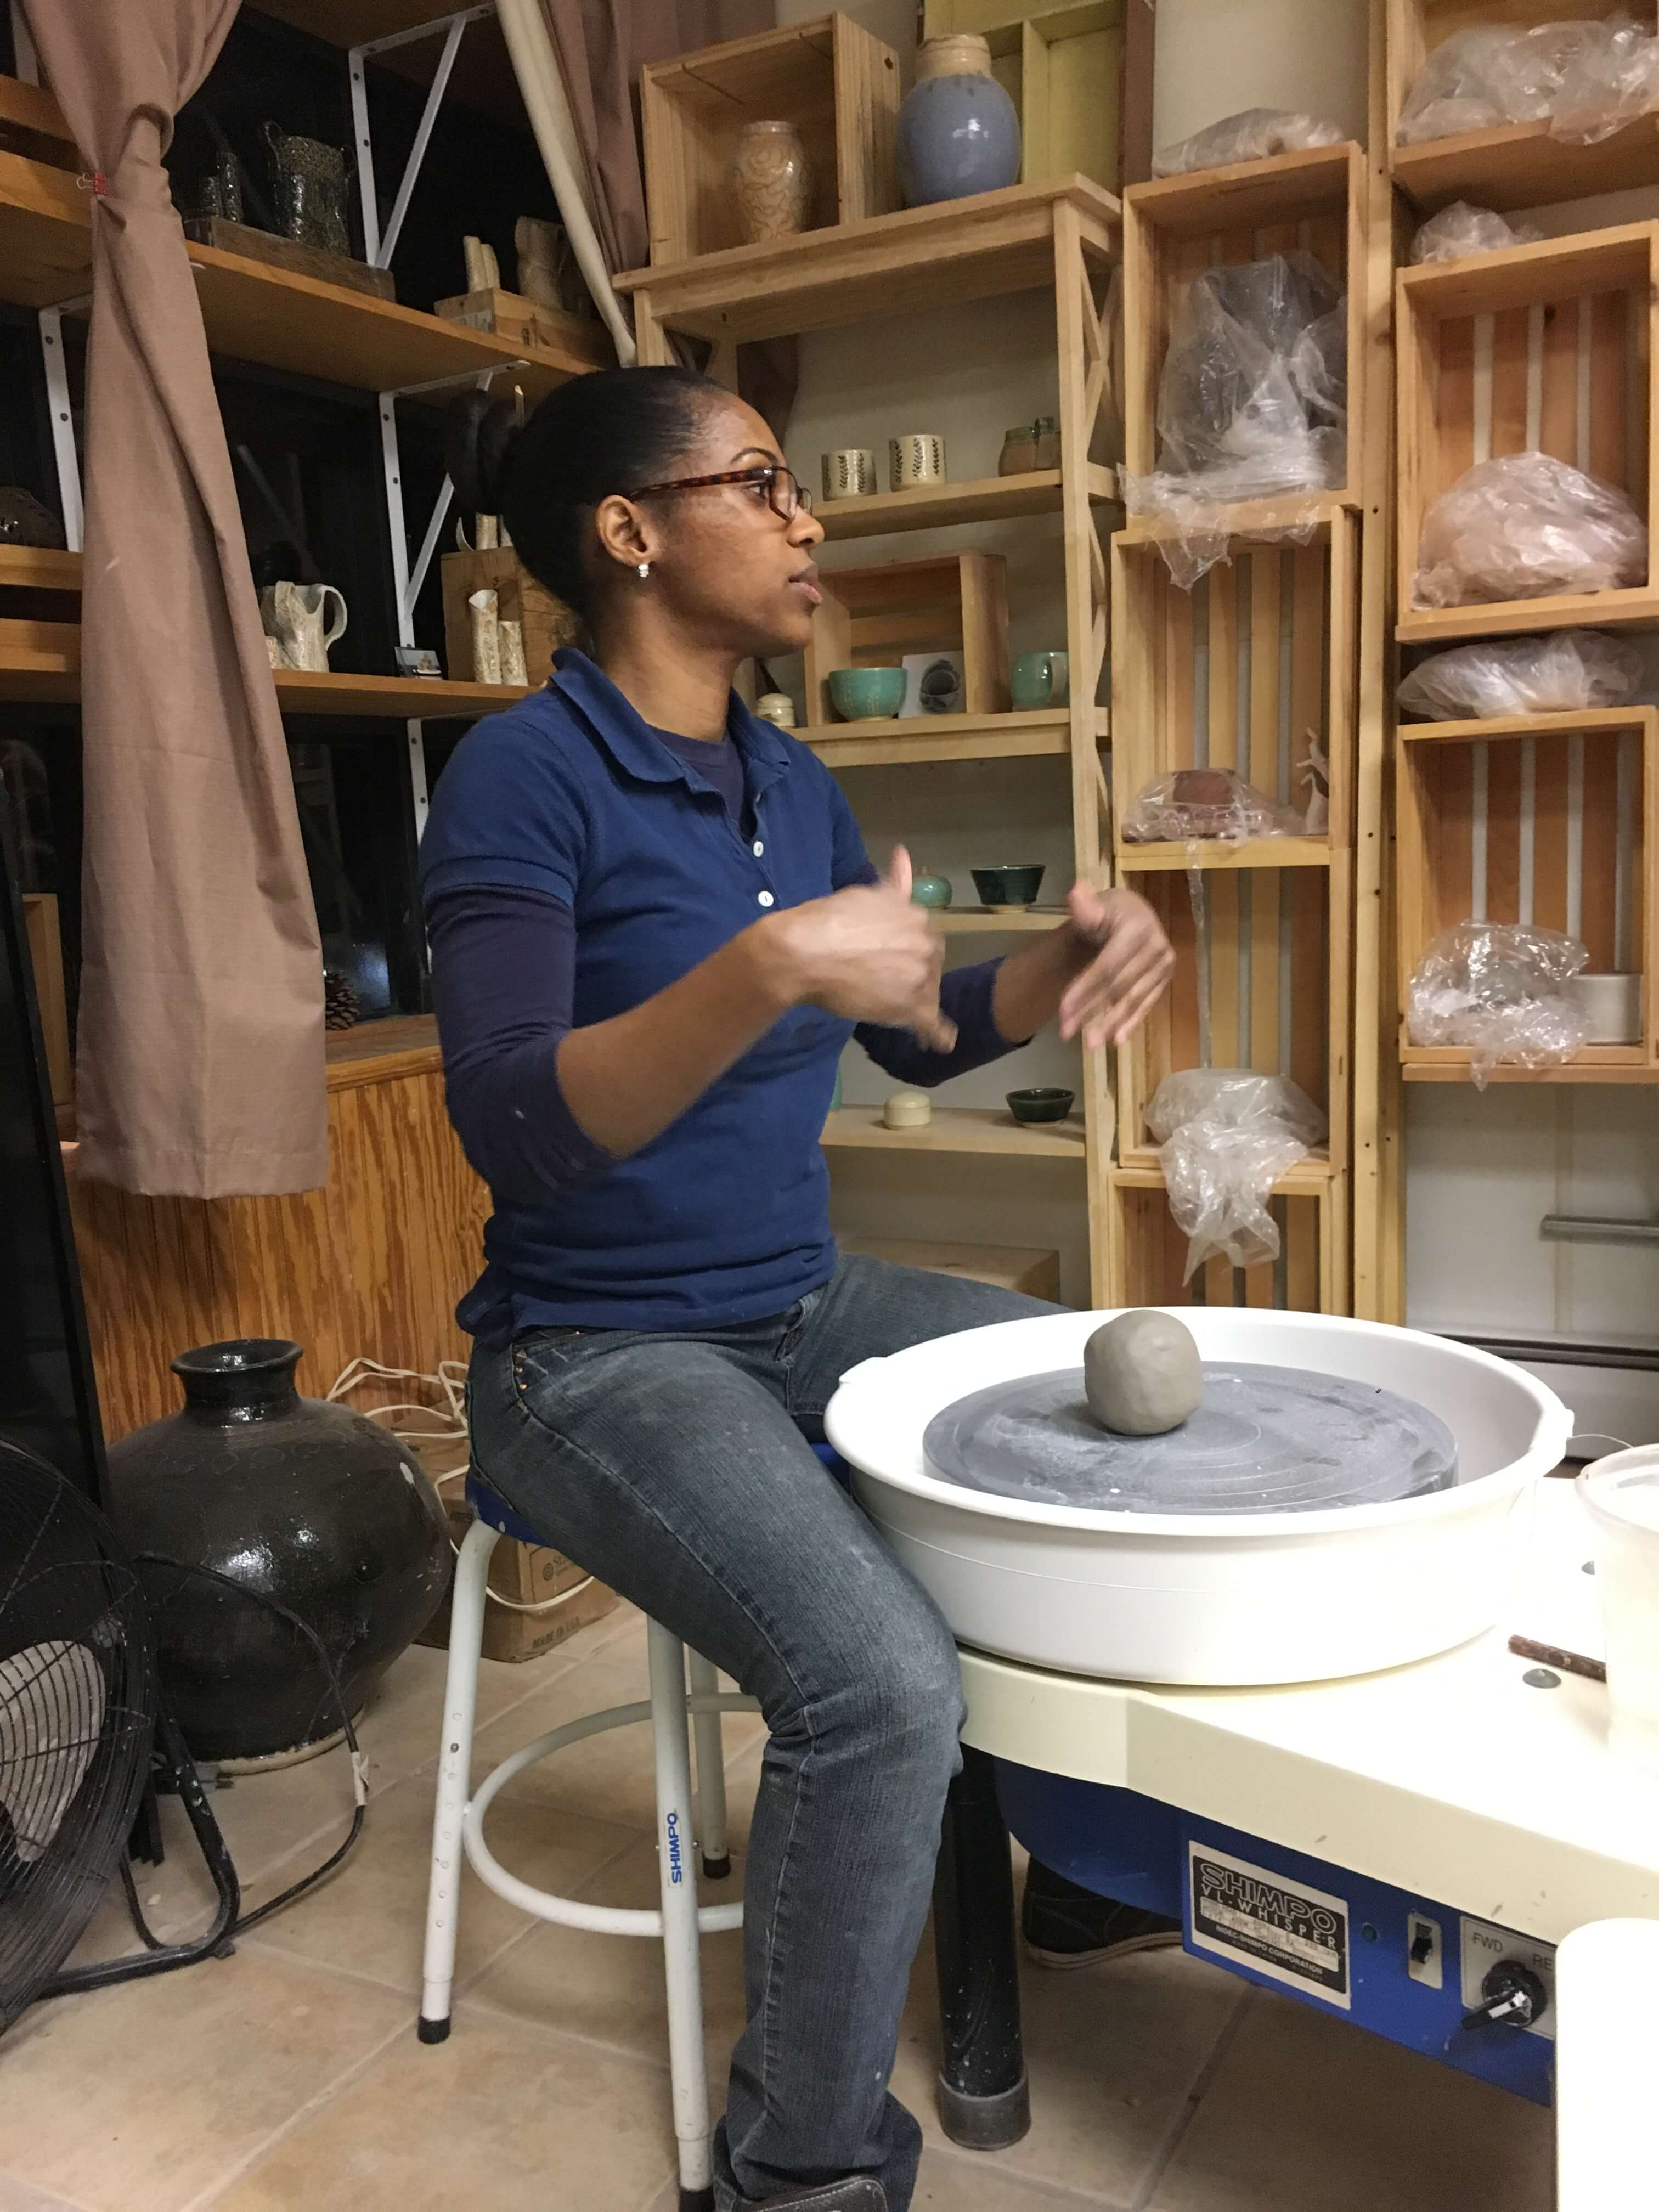 Date Night Idea: Clay Soirée at the Yonkers Pottery Studio instructor-led